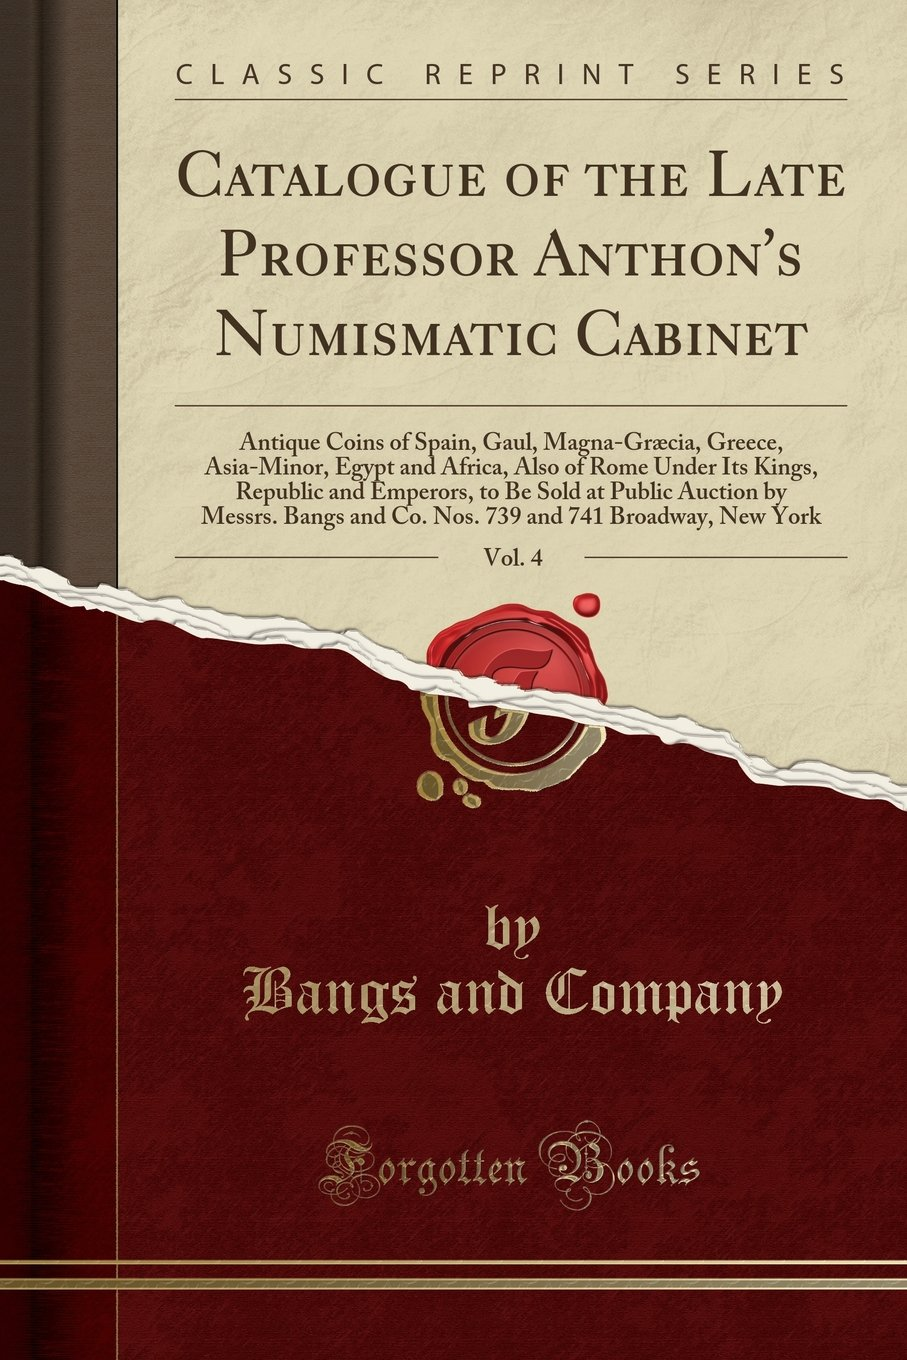 Catalogue of the Late Professor Anthon's Numismatic Cabinet, Vol. 4: Antique Coins of Spain, Gaul, Magna-Græcia, Greece, Asia-Minor, Egypt and Africa, ... Sold at Public Auction by Messrs. Bangs and pdf